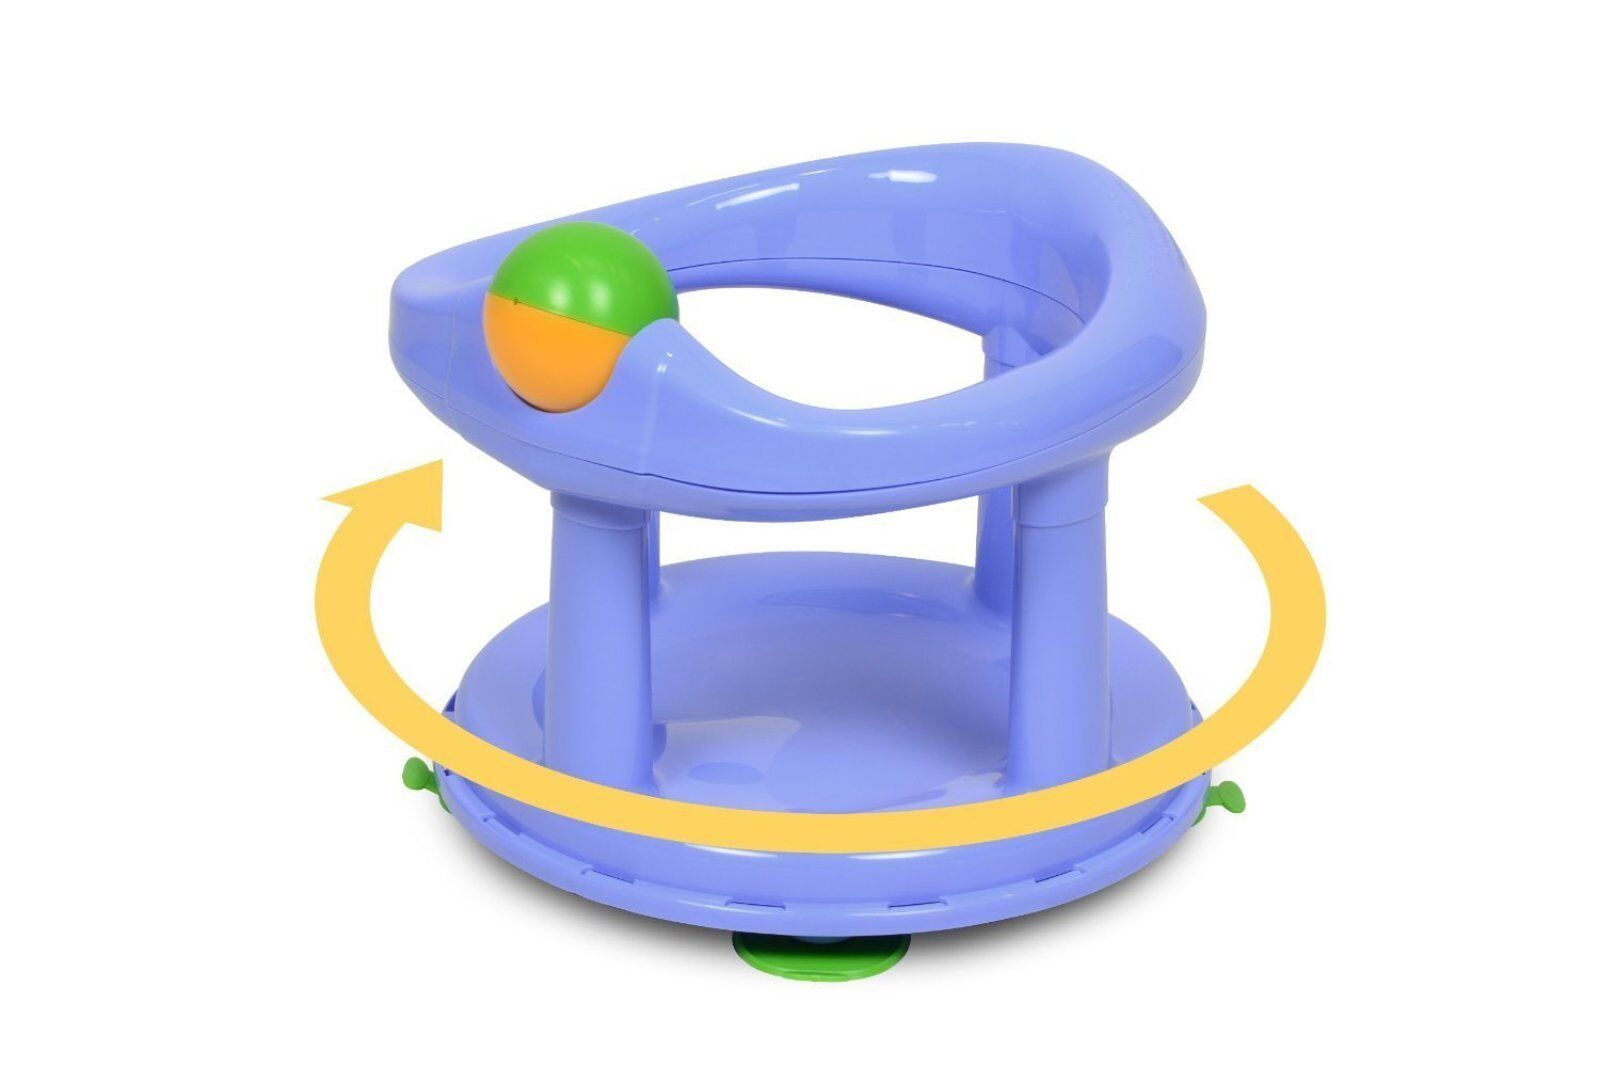 Safety 1st Swivel Bath Seat for Baby Bathing Support Seat - Pastel ...